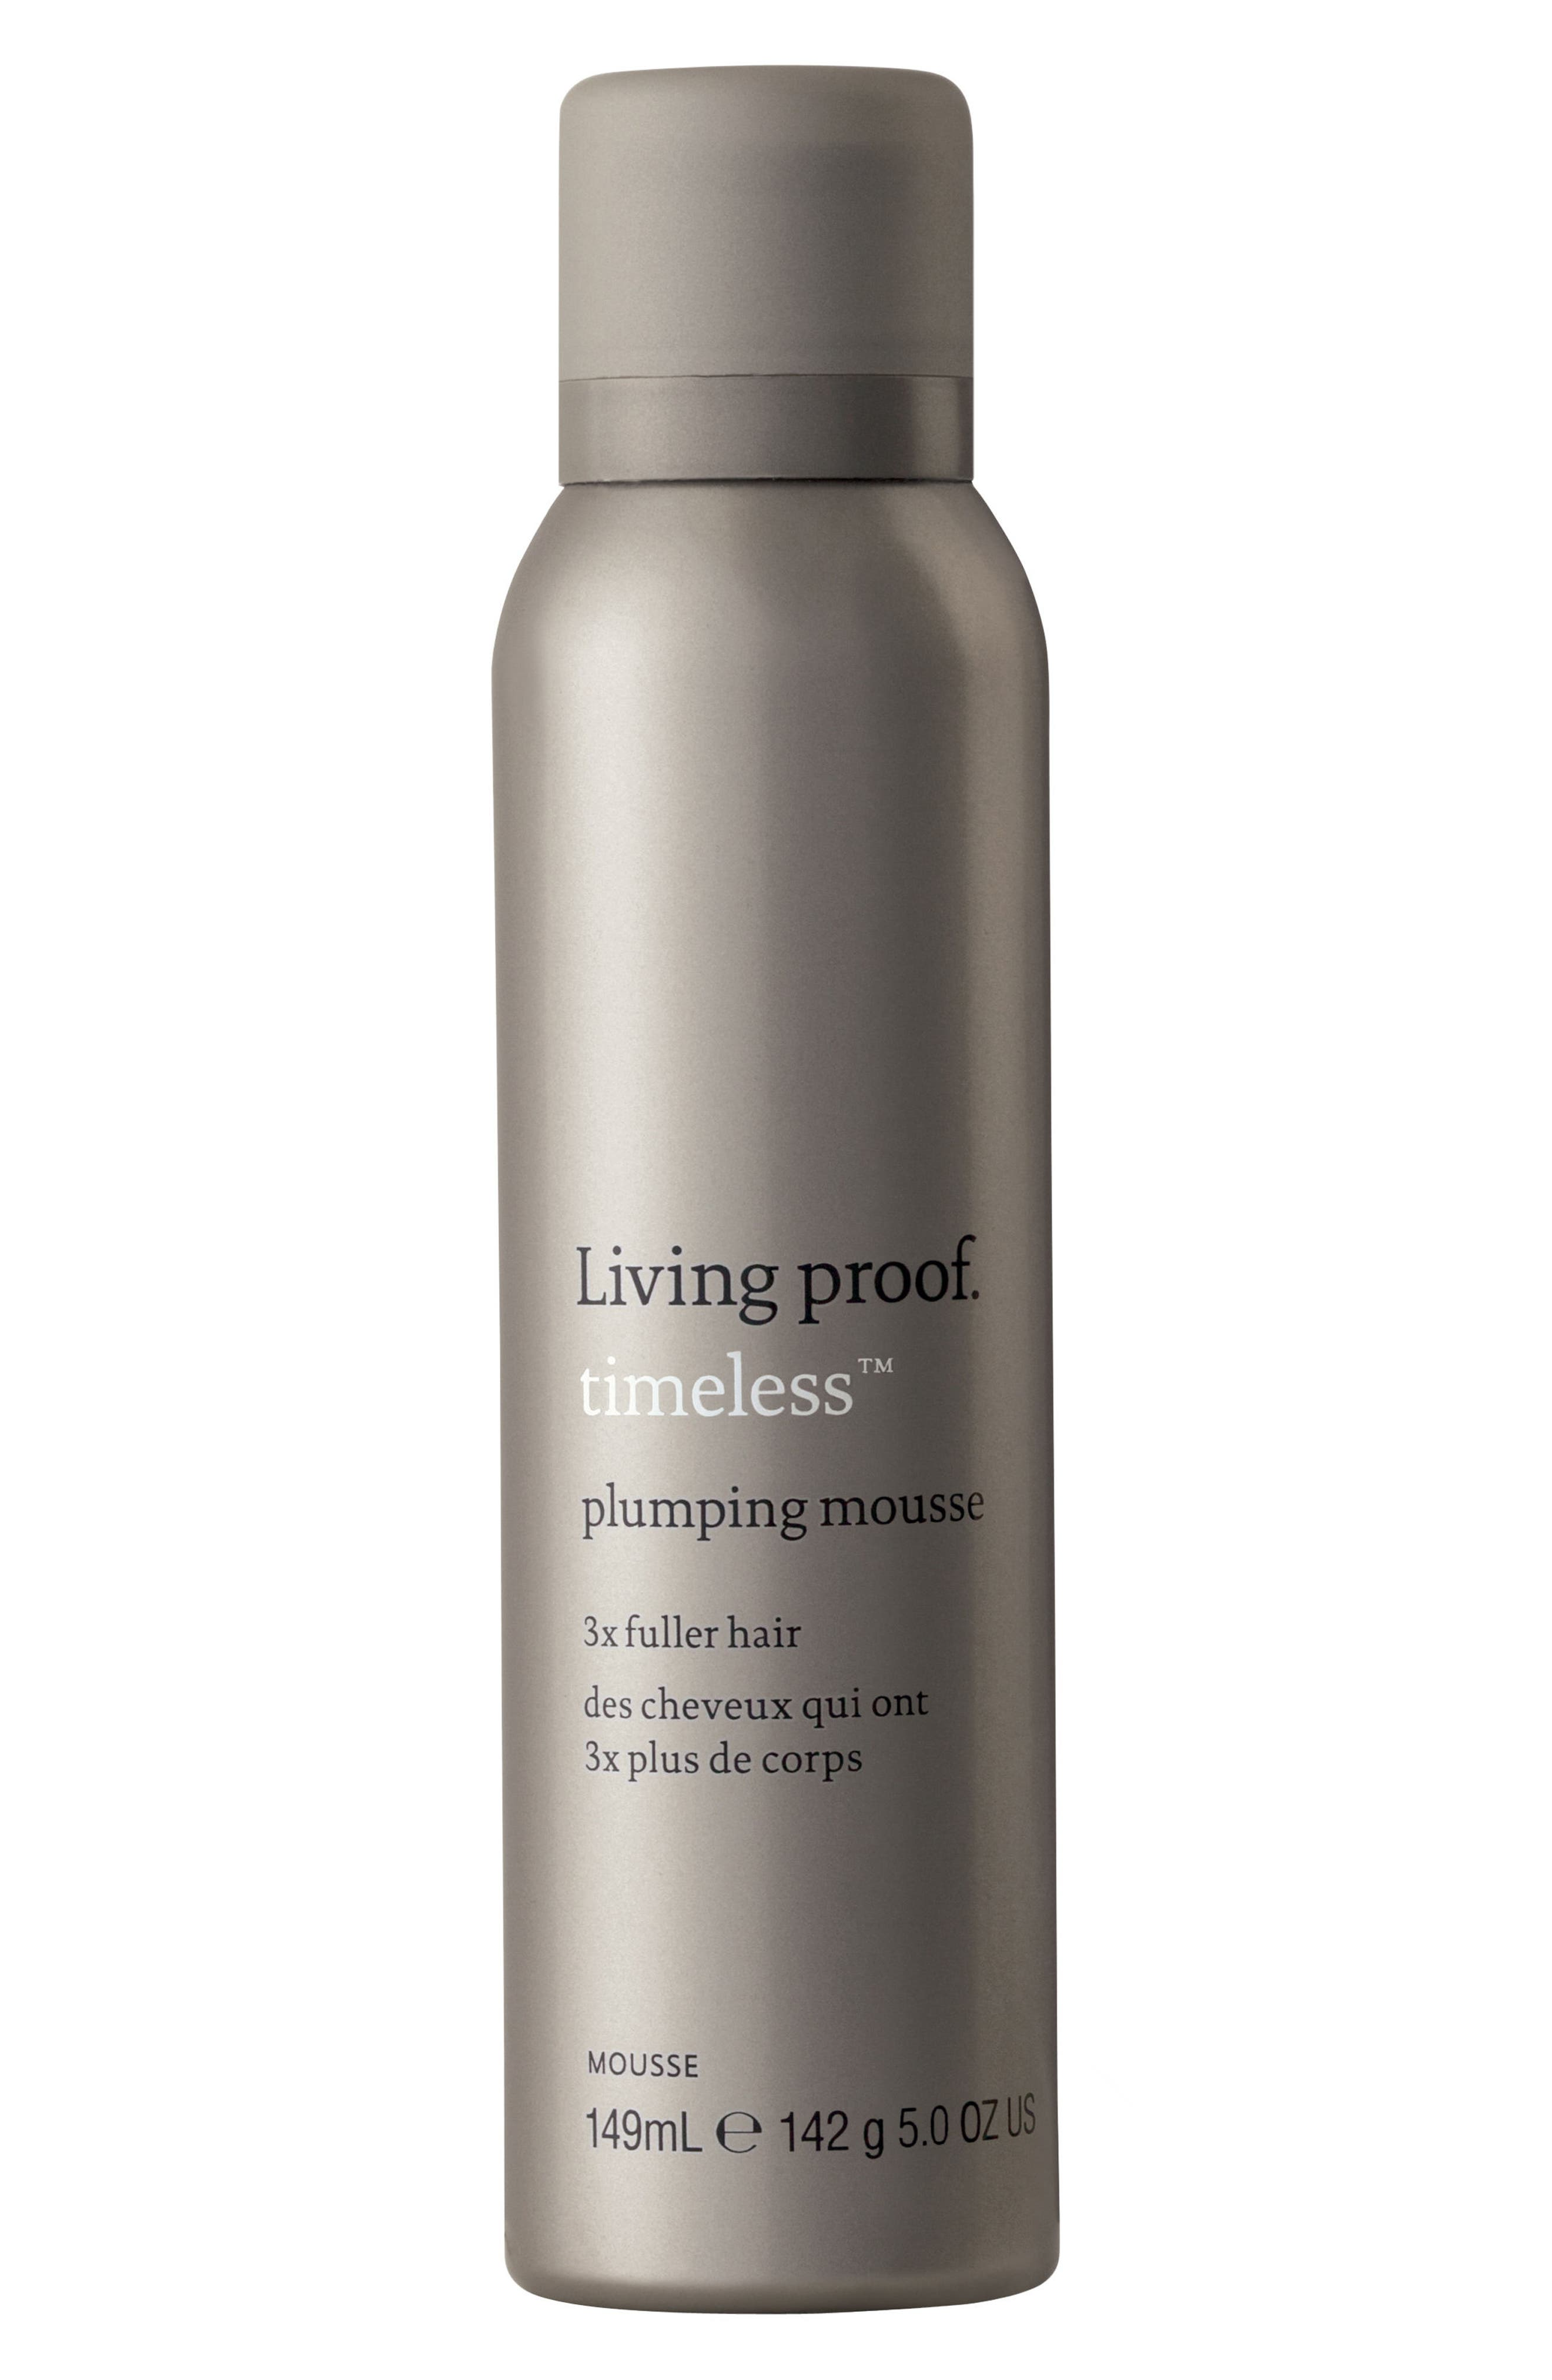 Alternate Image 1 Selected - Living proof® Timeless Plumping Mousse